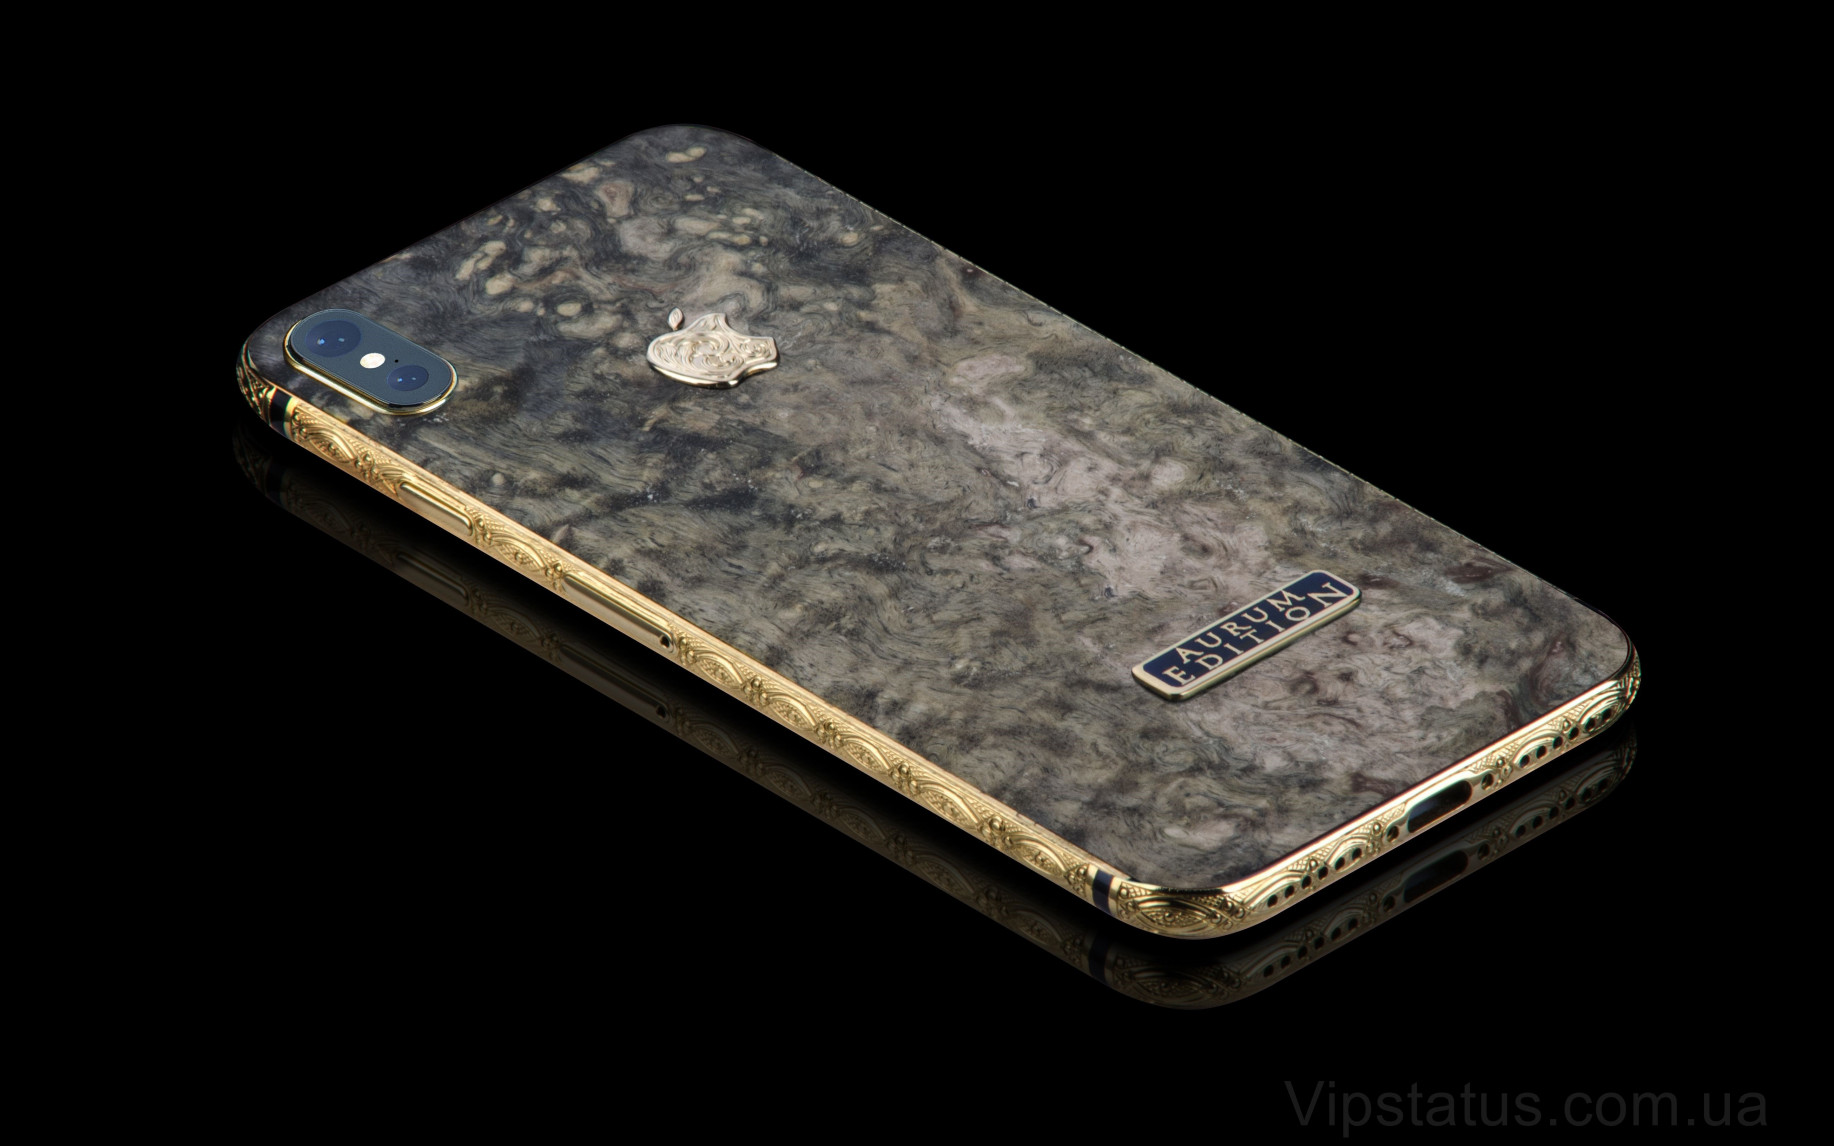 Elite Gold Ornate Prince IPHONE XS 512 GB Gold Ornate Prince IPHONE XS 512 GB image 2